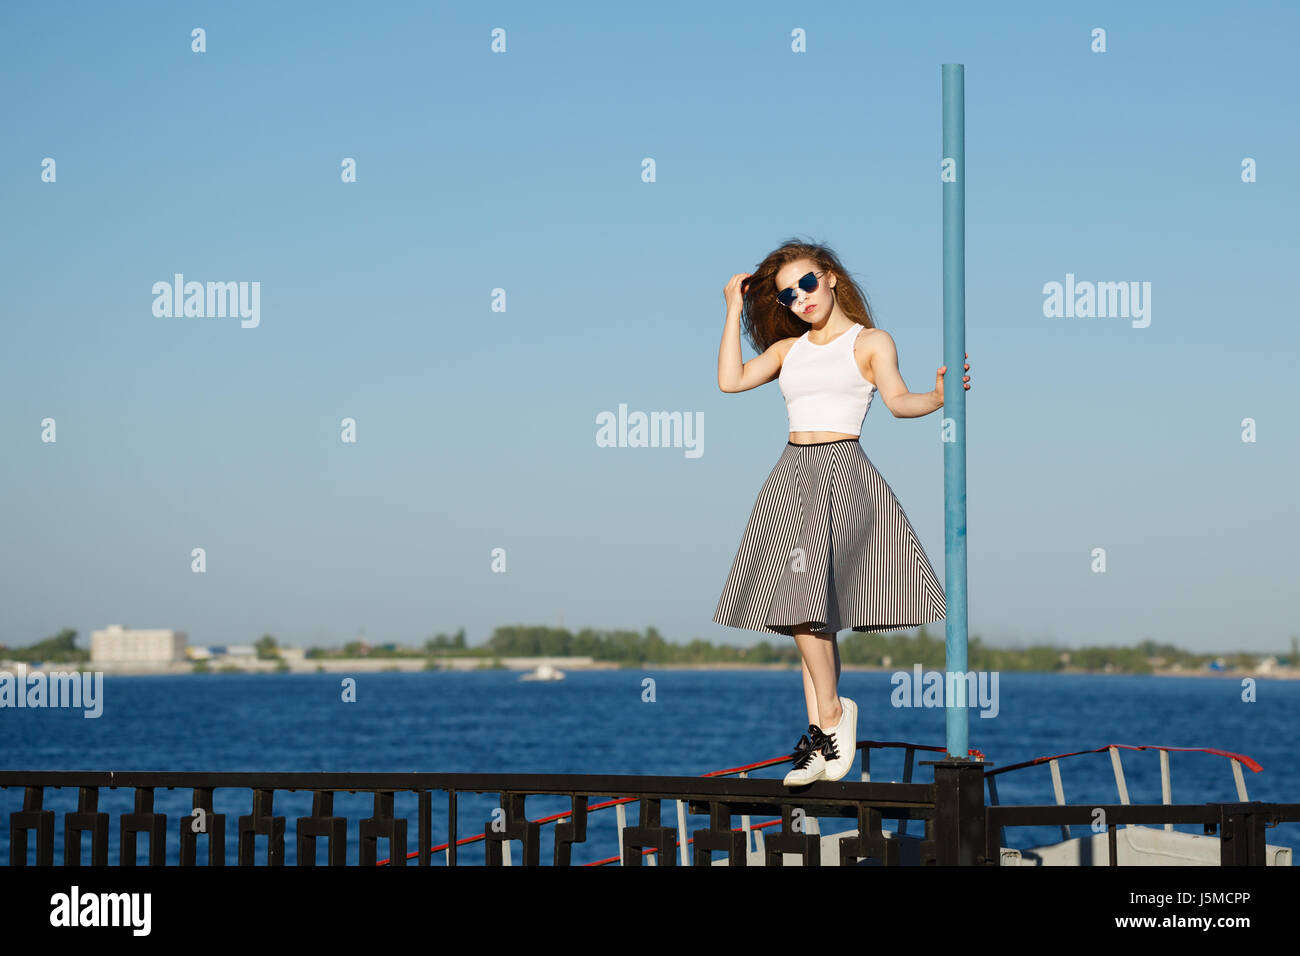 Young attractive girl hipster dancing on the pole. She is wearing a top, a skirt and sunglasses. The concept of - Stock Image